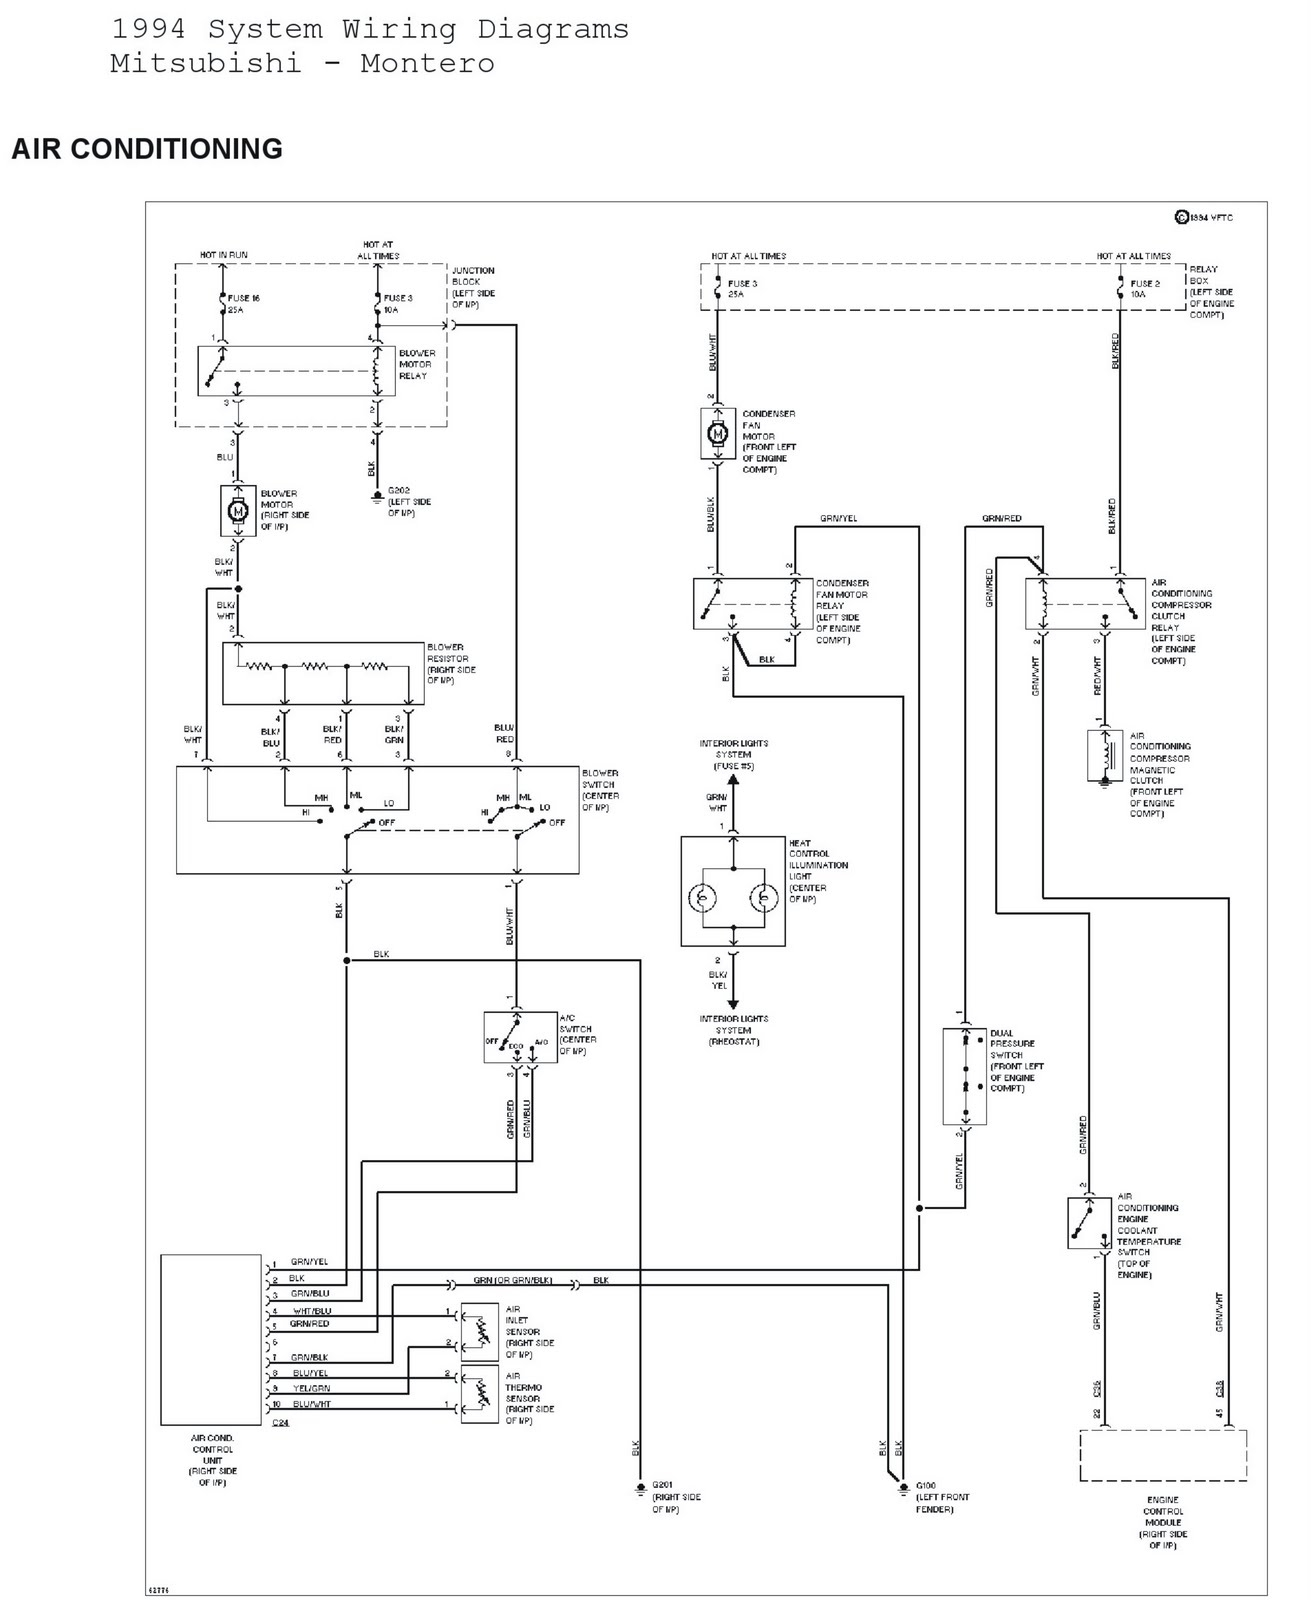 0001 mitsubishi air conditioner reviews malaysia mitsubishi mr slim wiring diagram at n-0.co